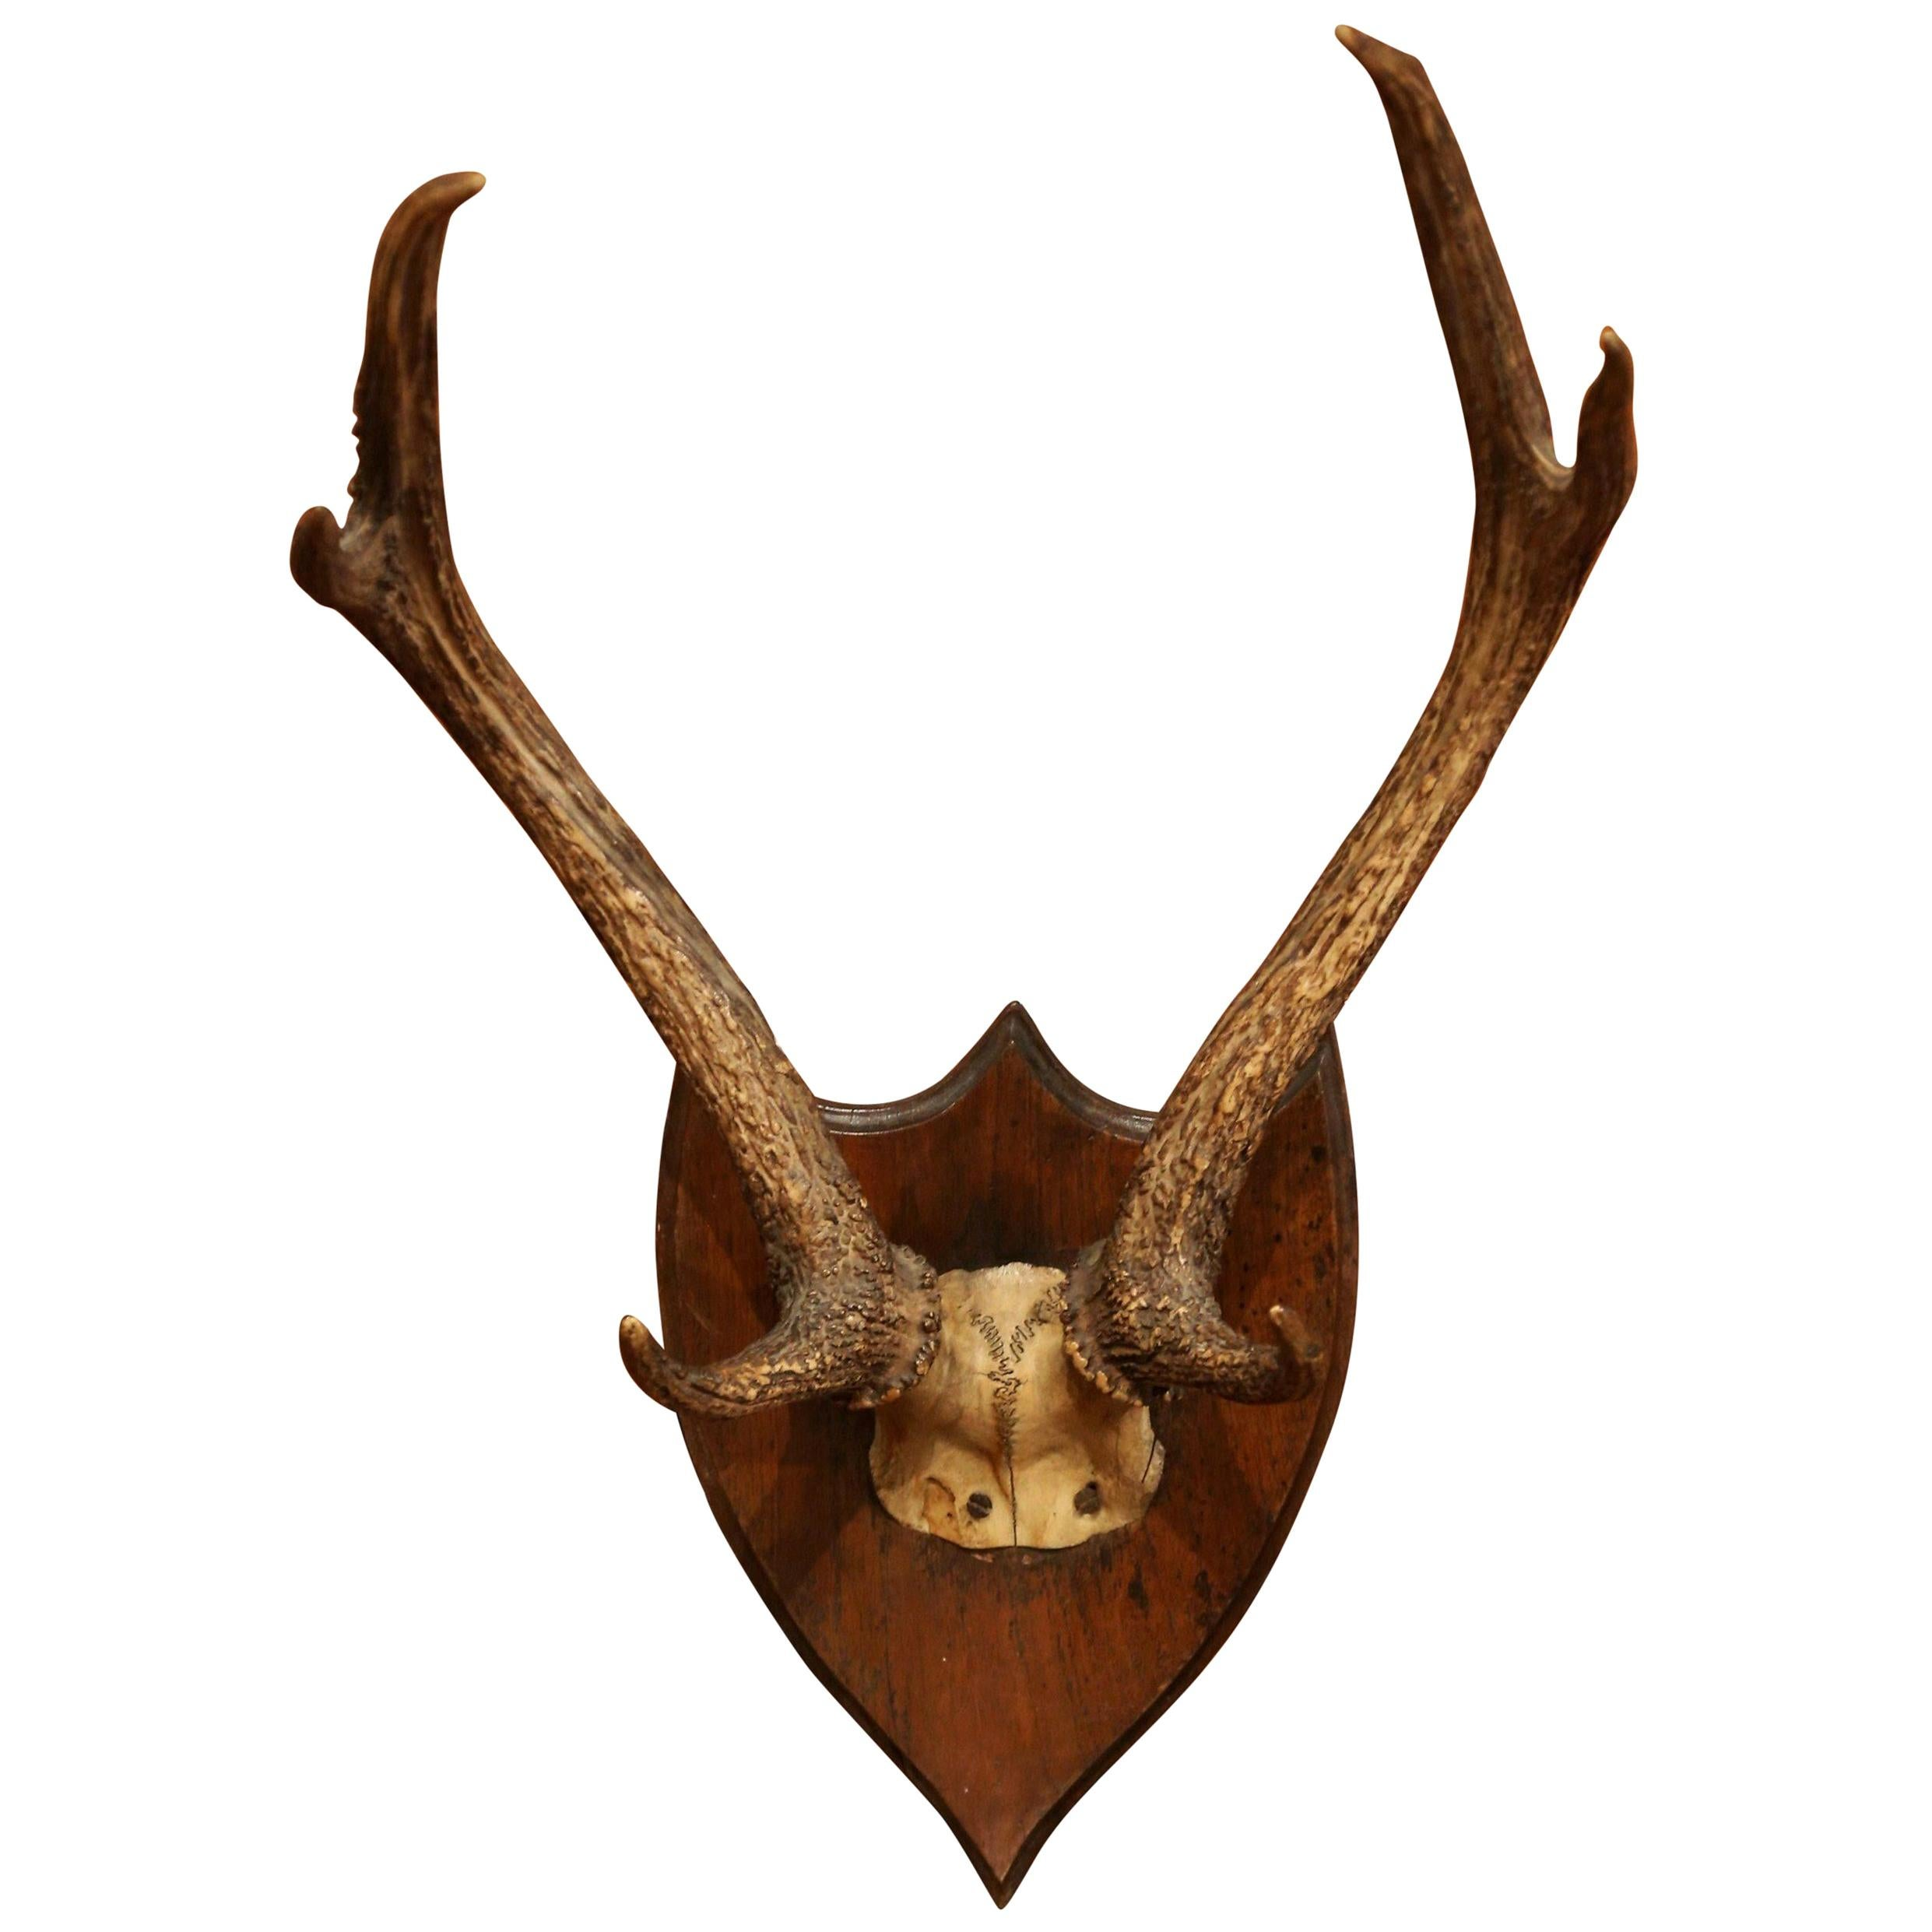 19th Century French Mounted Deer Antler Trophy on Carved Walnut Plaque